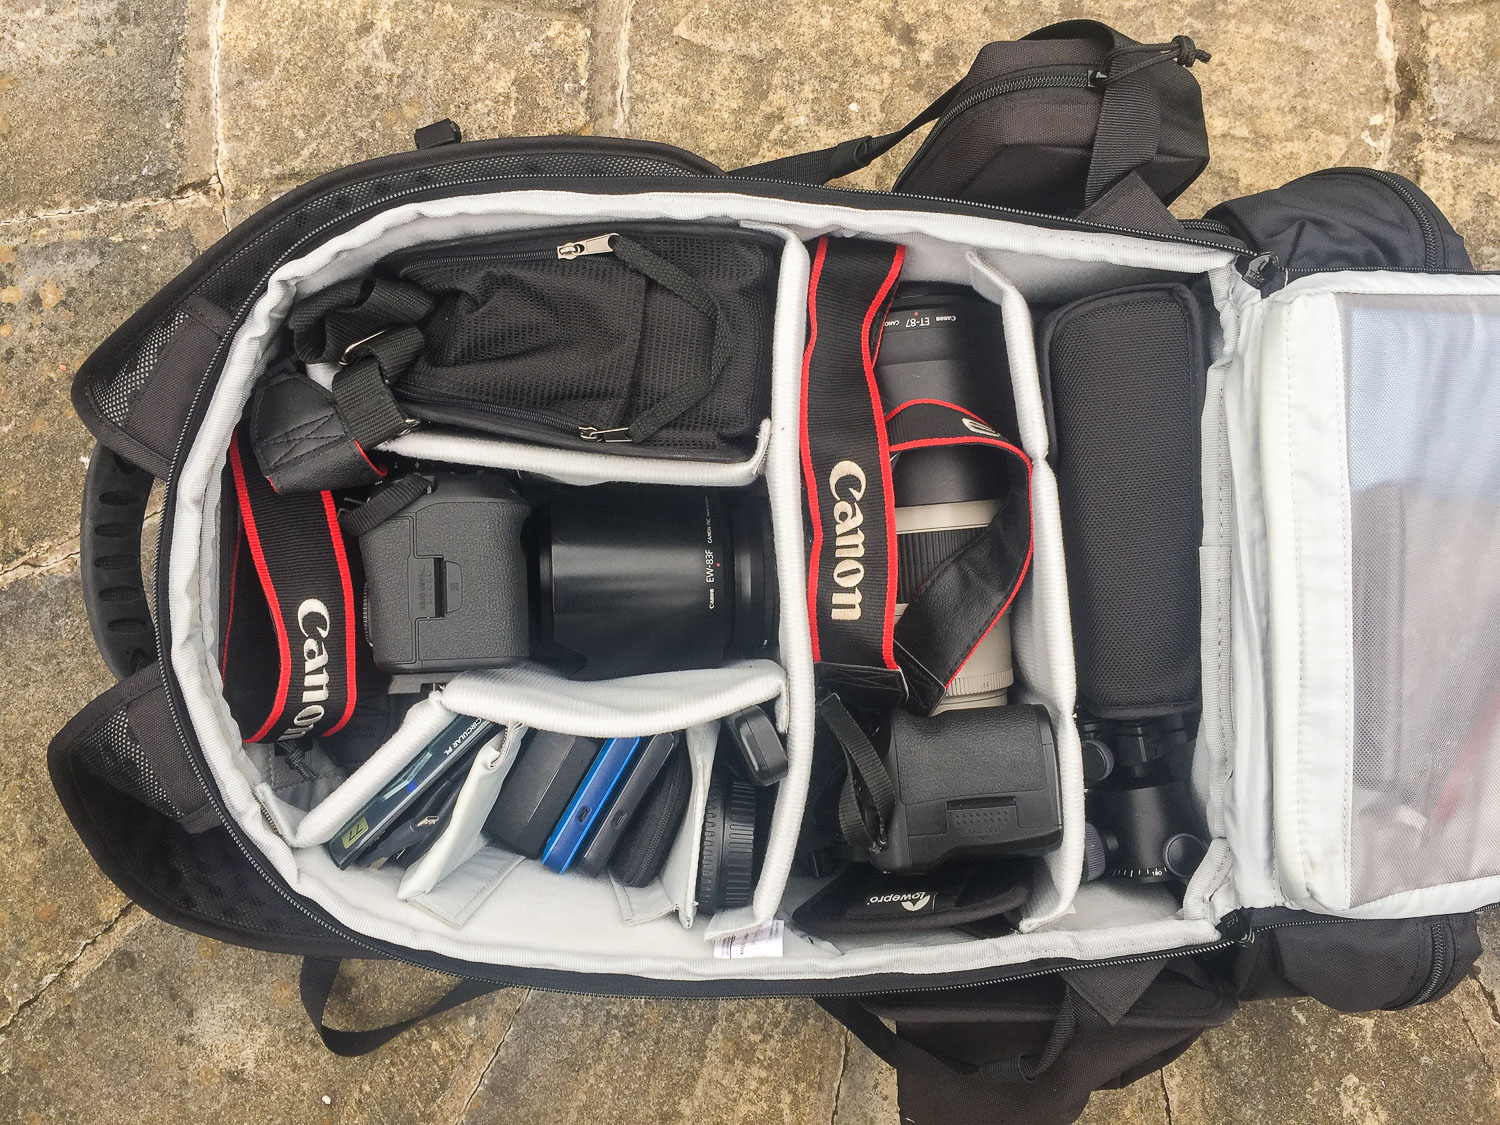 camera bag full of gear - The First 10 Things You Need to Buy After Your Camera for Travel Photography